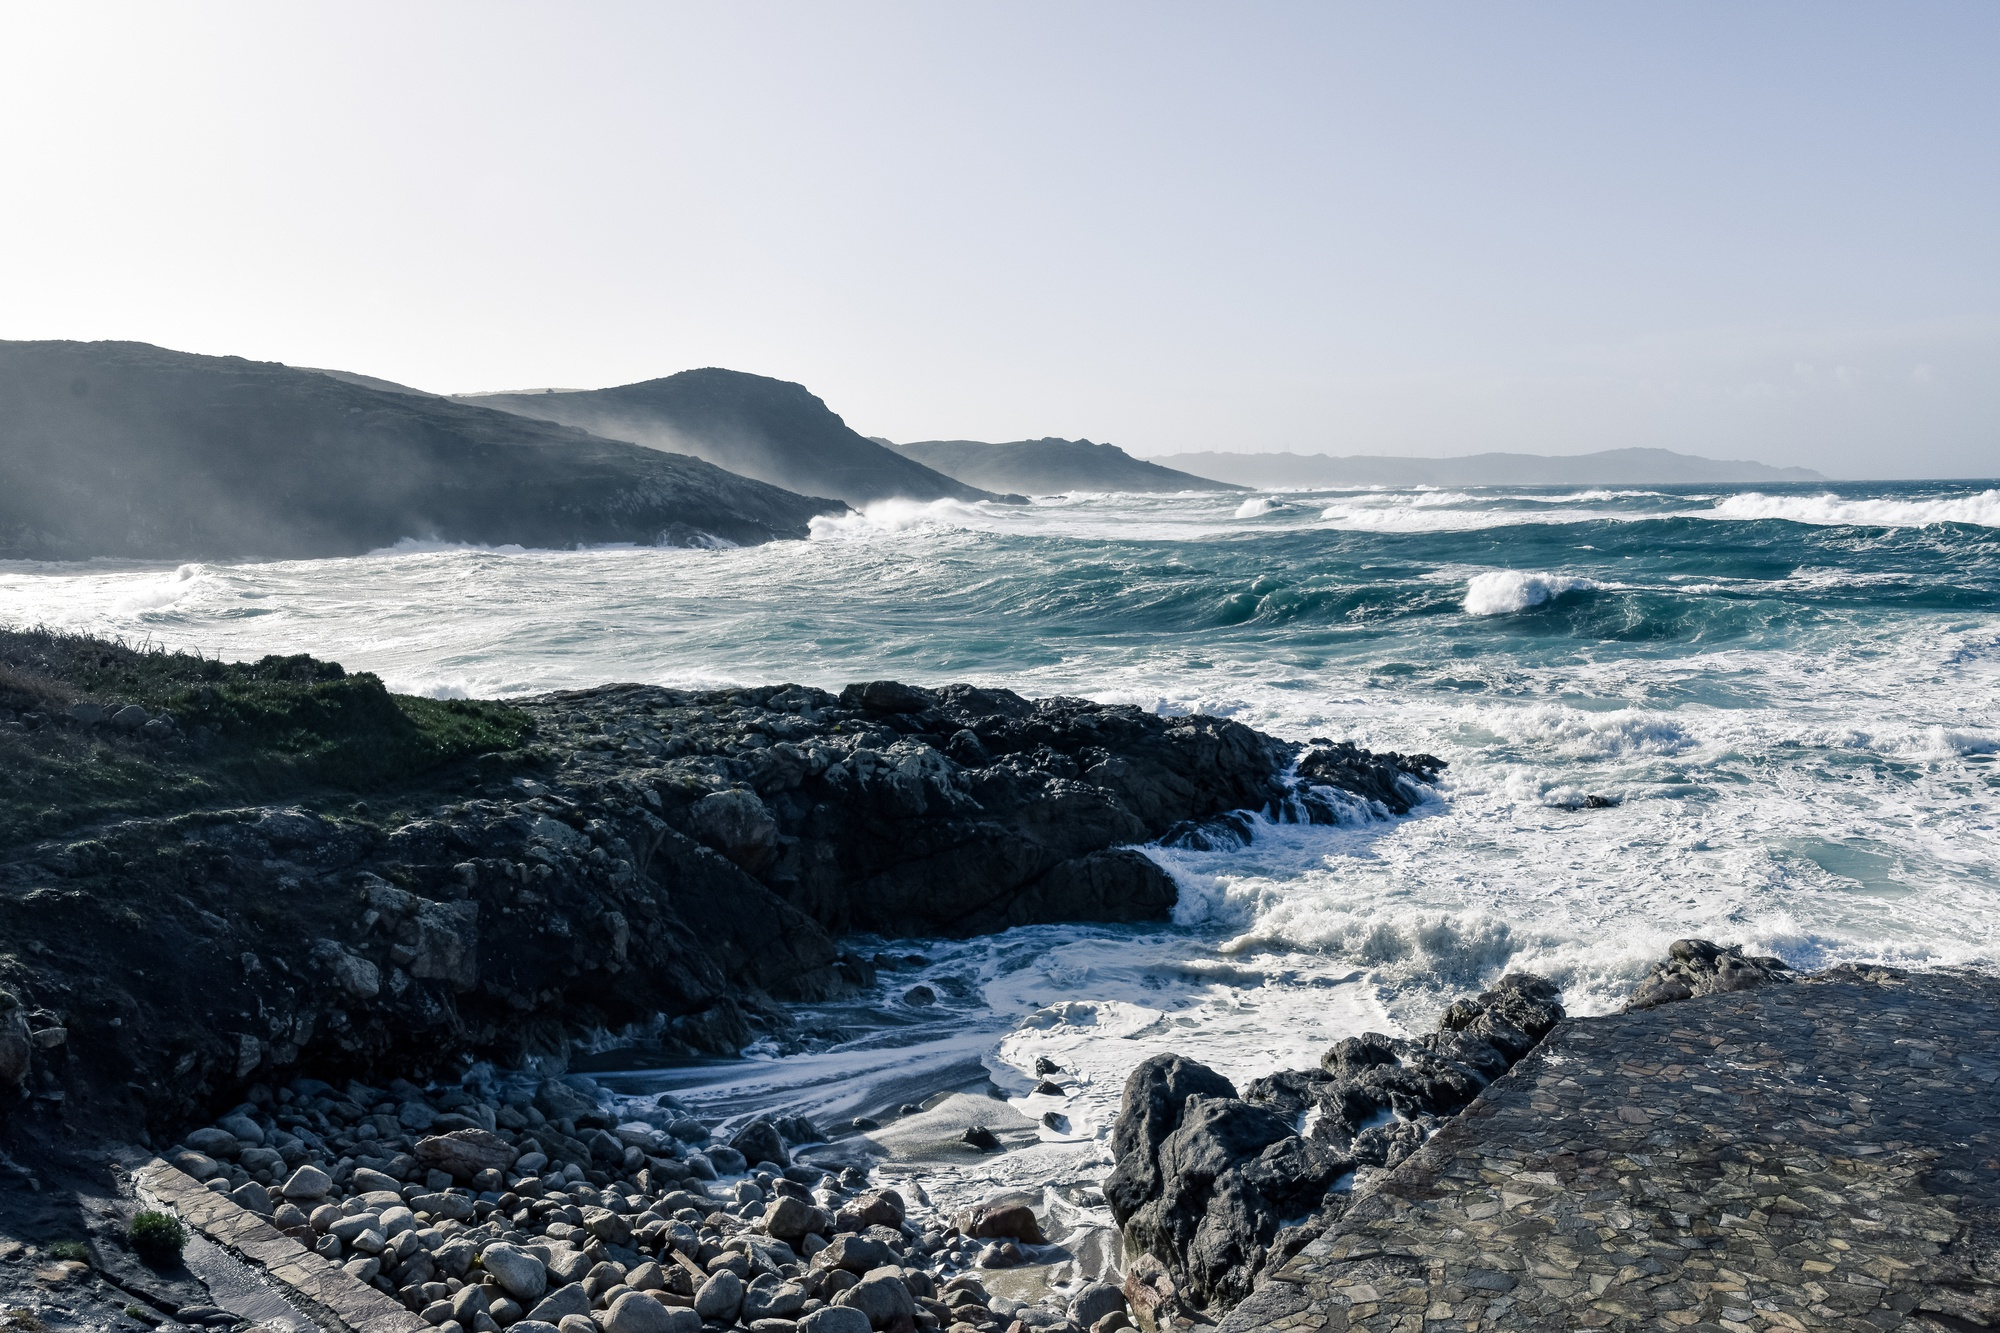 magnificent-ocean-waves-coming-beautiful-rocks-beach-cloudy-day (1)